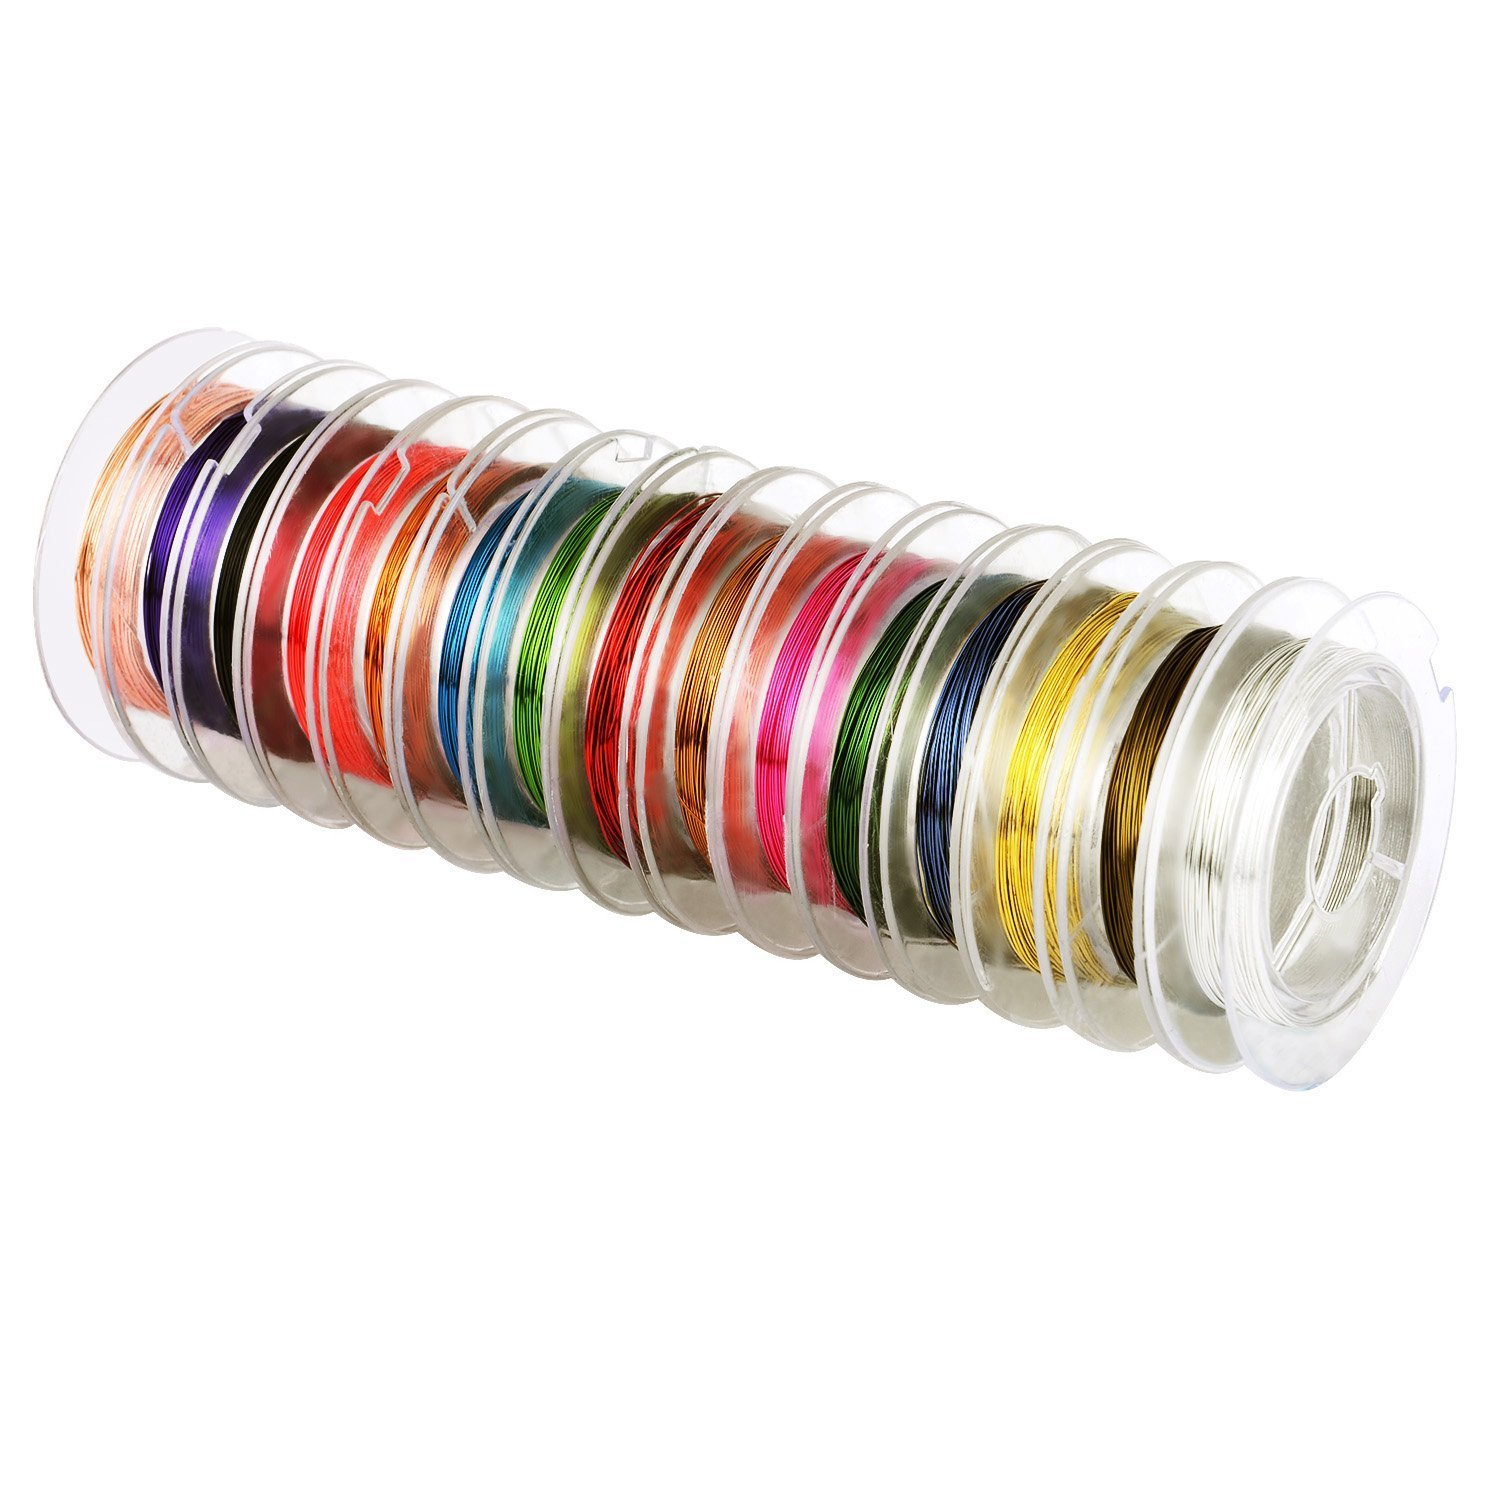 eBoot 15 Pieces 0.3 mm Colorful Jewelry Beading Wire Bare Copper Wire Rolls for Crafting Beading Jewelry Making